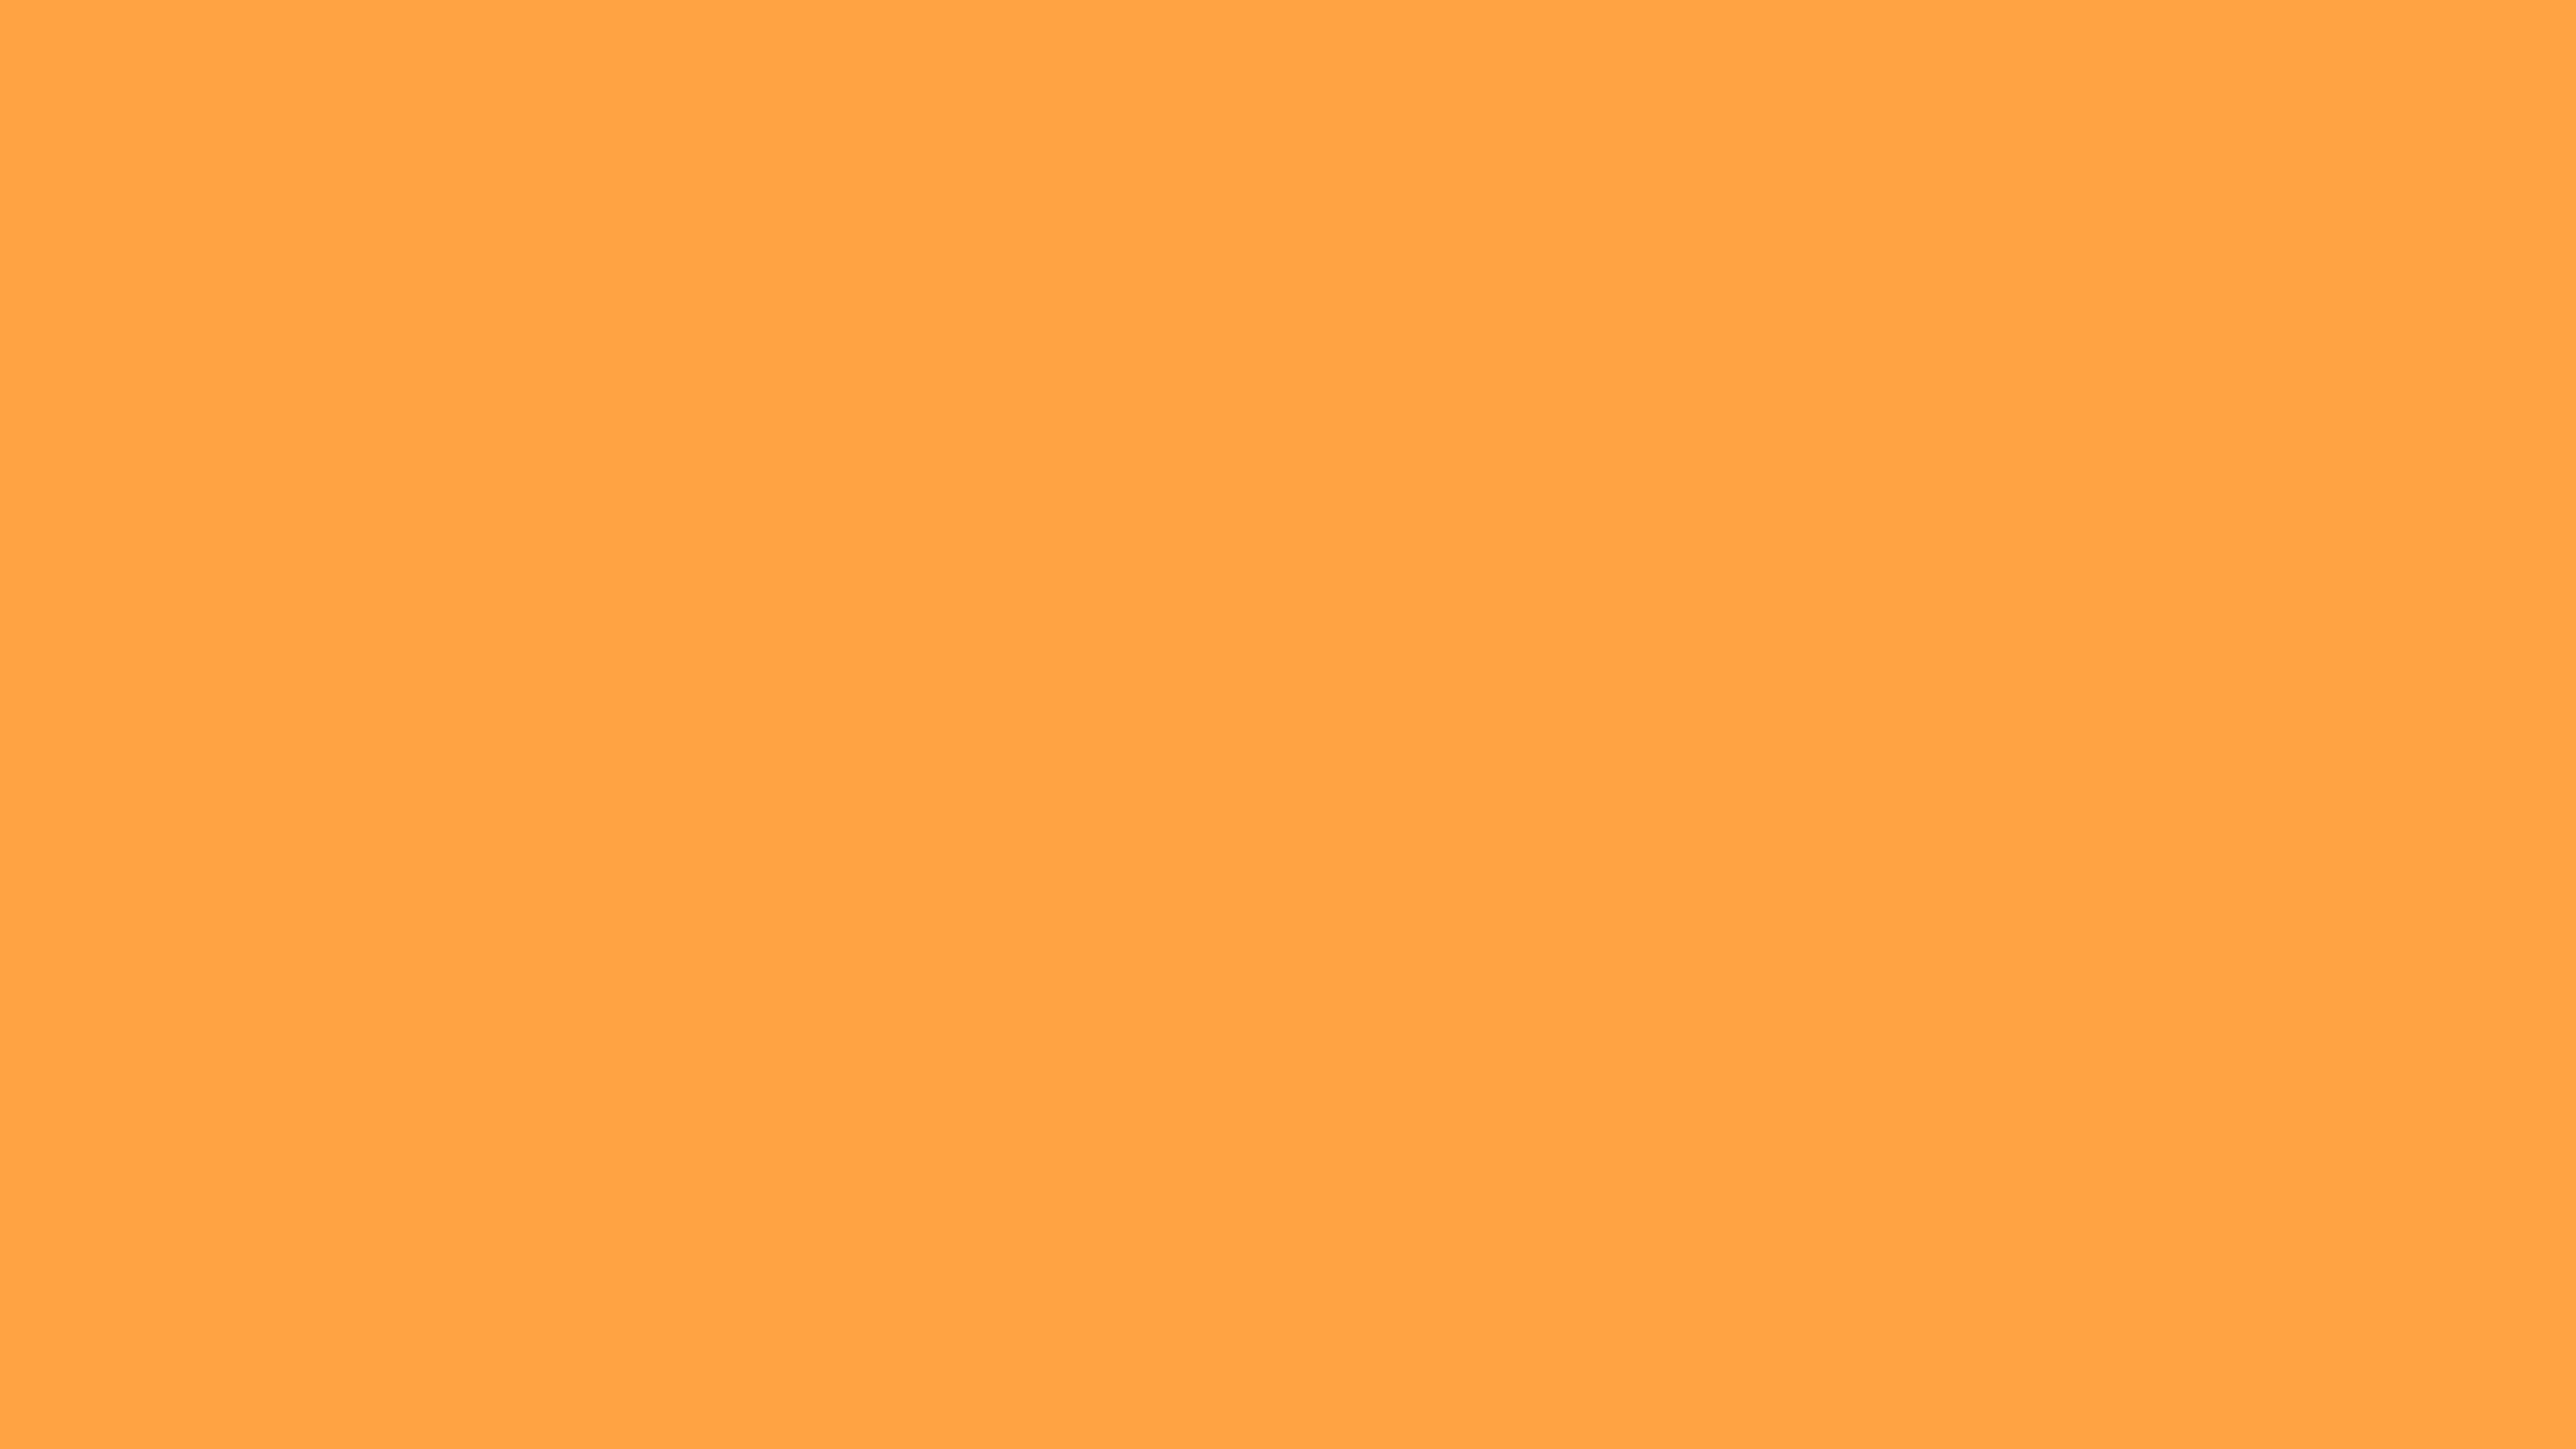 4096x2304 Neon Carrot Solid Color Background